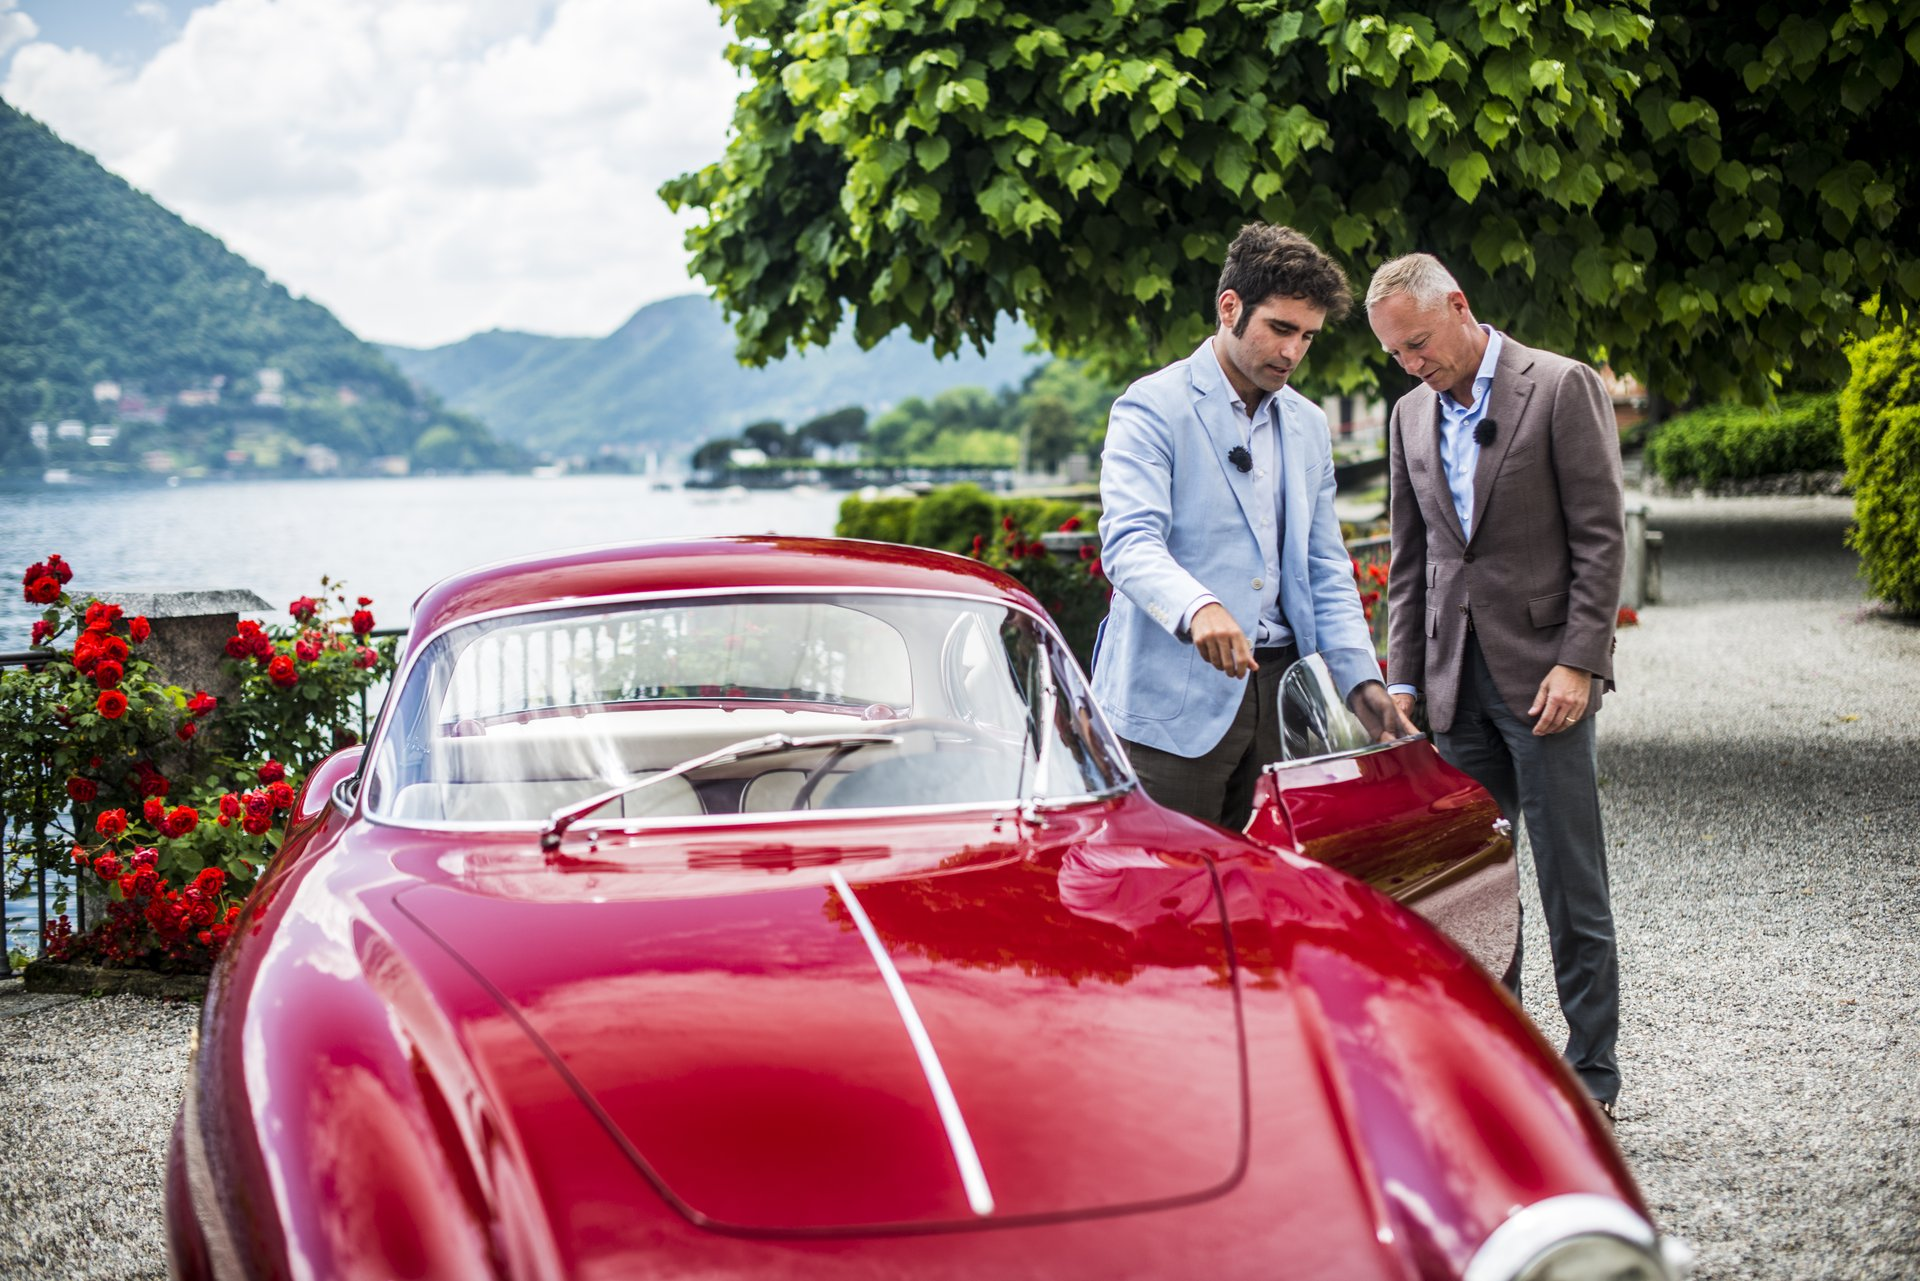 """From 24 to 26 May 2019, A. Lange & Söhne will once again sponsor the Concorso d'Eleganza Villa d'Este, which has taken place at the Grand Hotel Villa d'Este in Como, Italy since 1929. For the eighth time, a one-off LANGE 1 TIME ZONE will be awarded to the winner of the """"Best of Show"""" competition."""